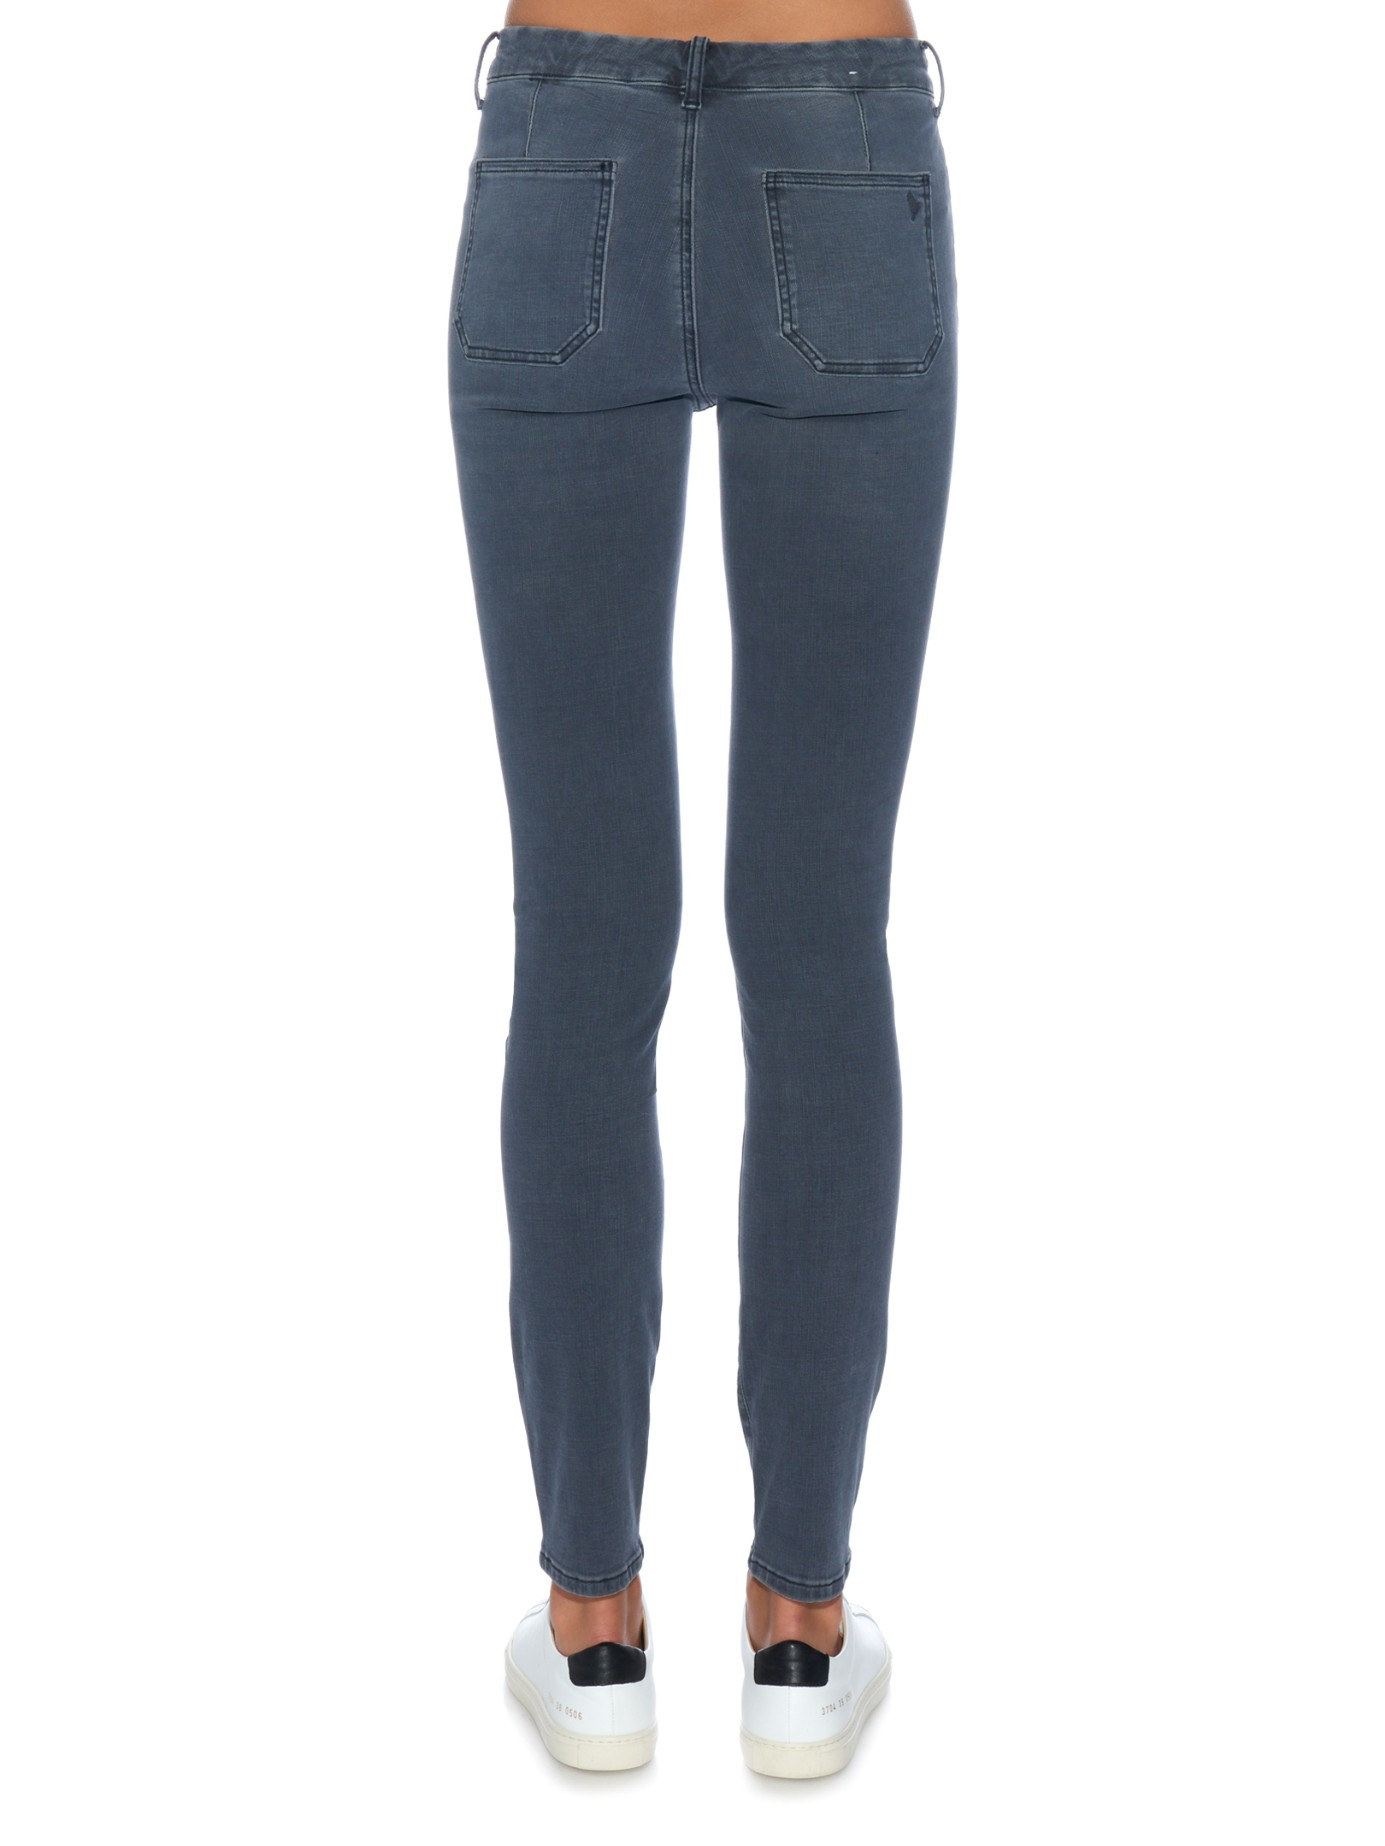 Bodycon High-rise Skinny Jeans - Black Mih Jeans